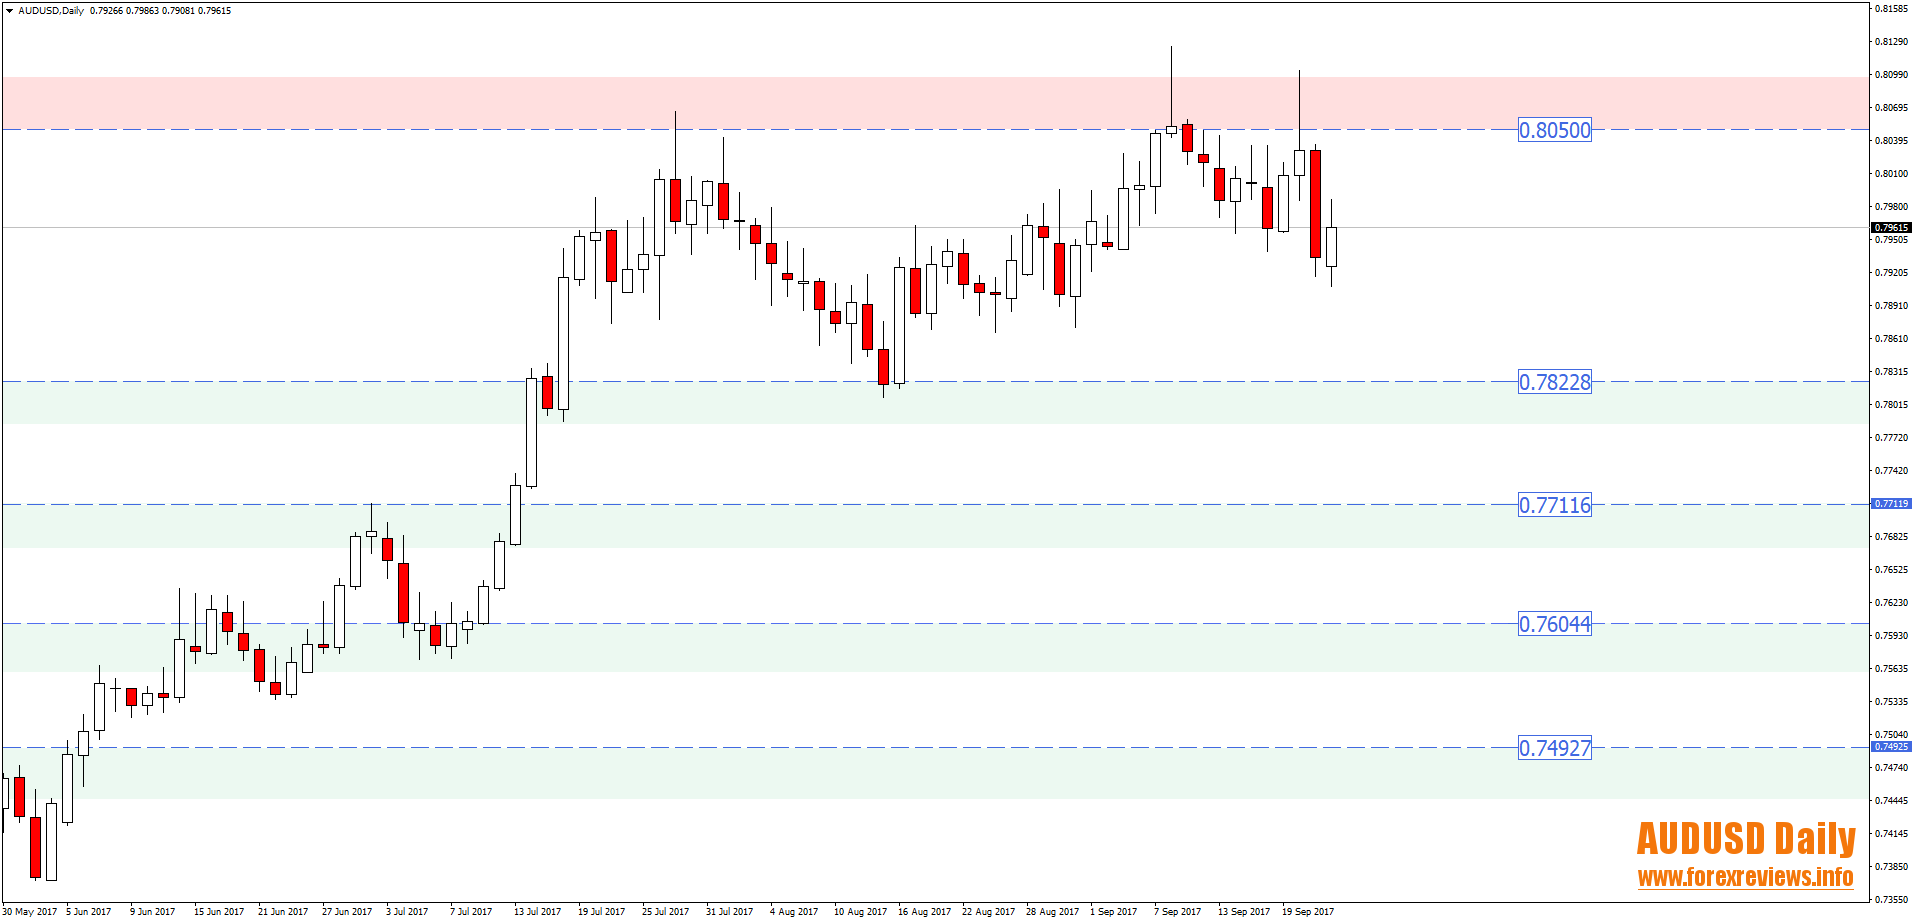 audusd daily trading opportunity areas 25th to 29th of September